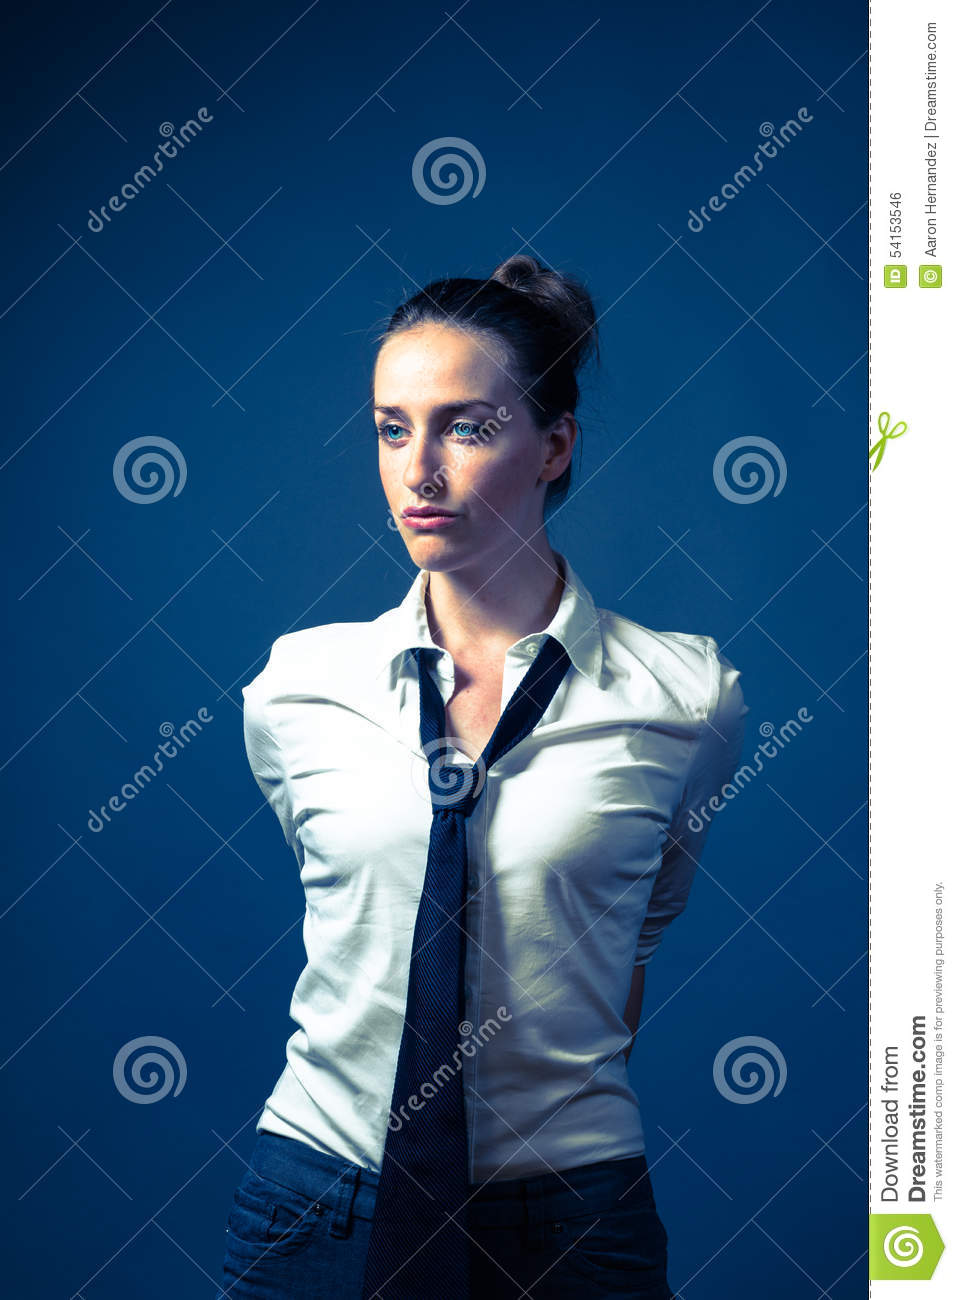 American Woman In White Shirt & Tie Stock Photo - Image: 54153546